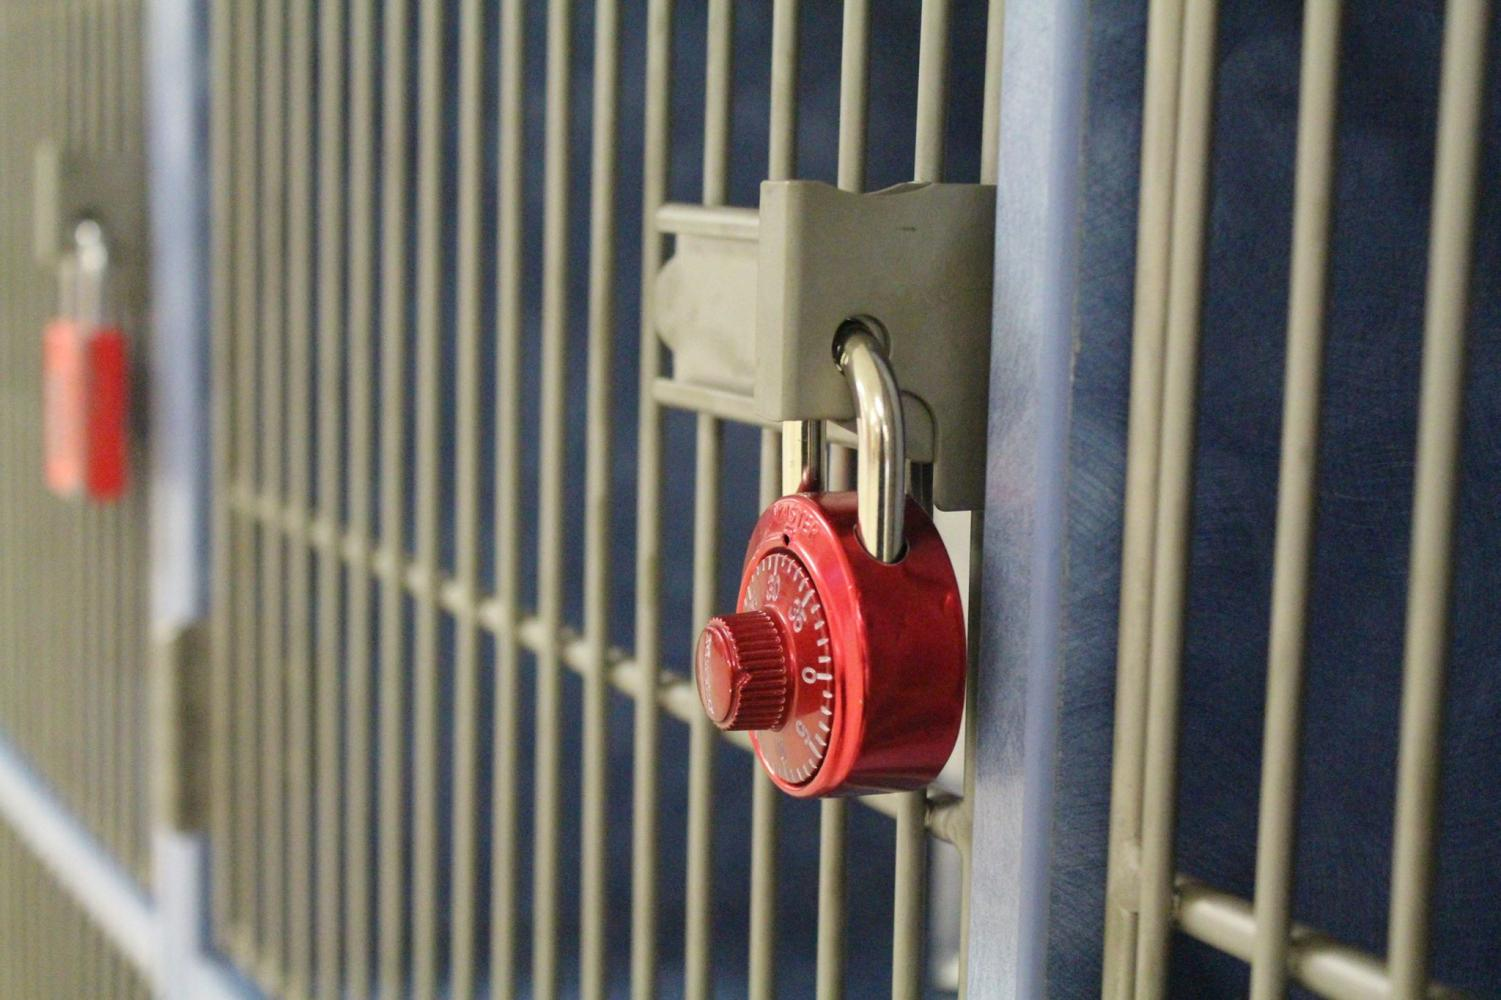 Locks secure many of the cubbies at Jefferson, including this one in the audlob.